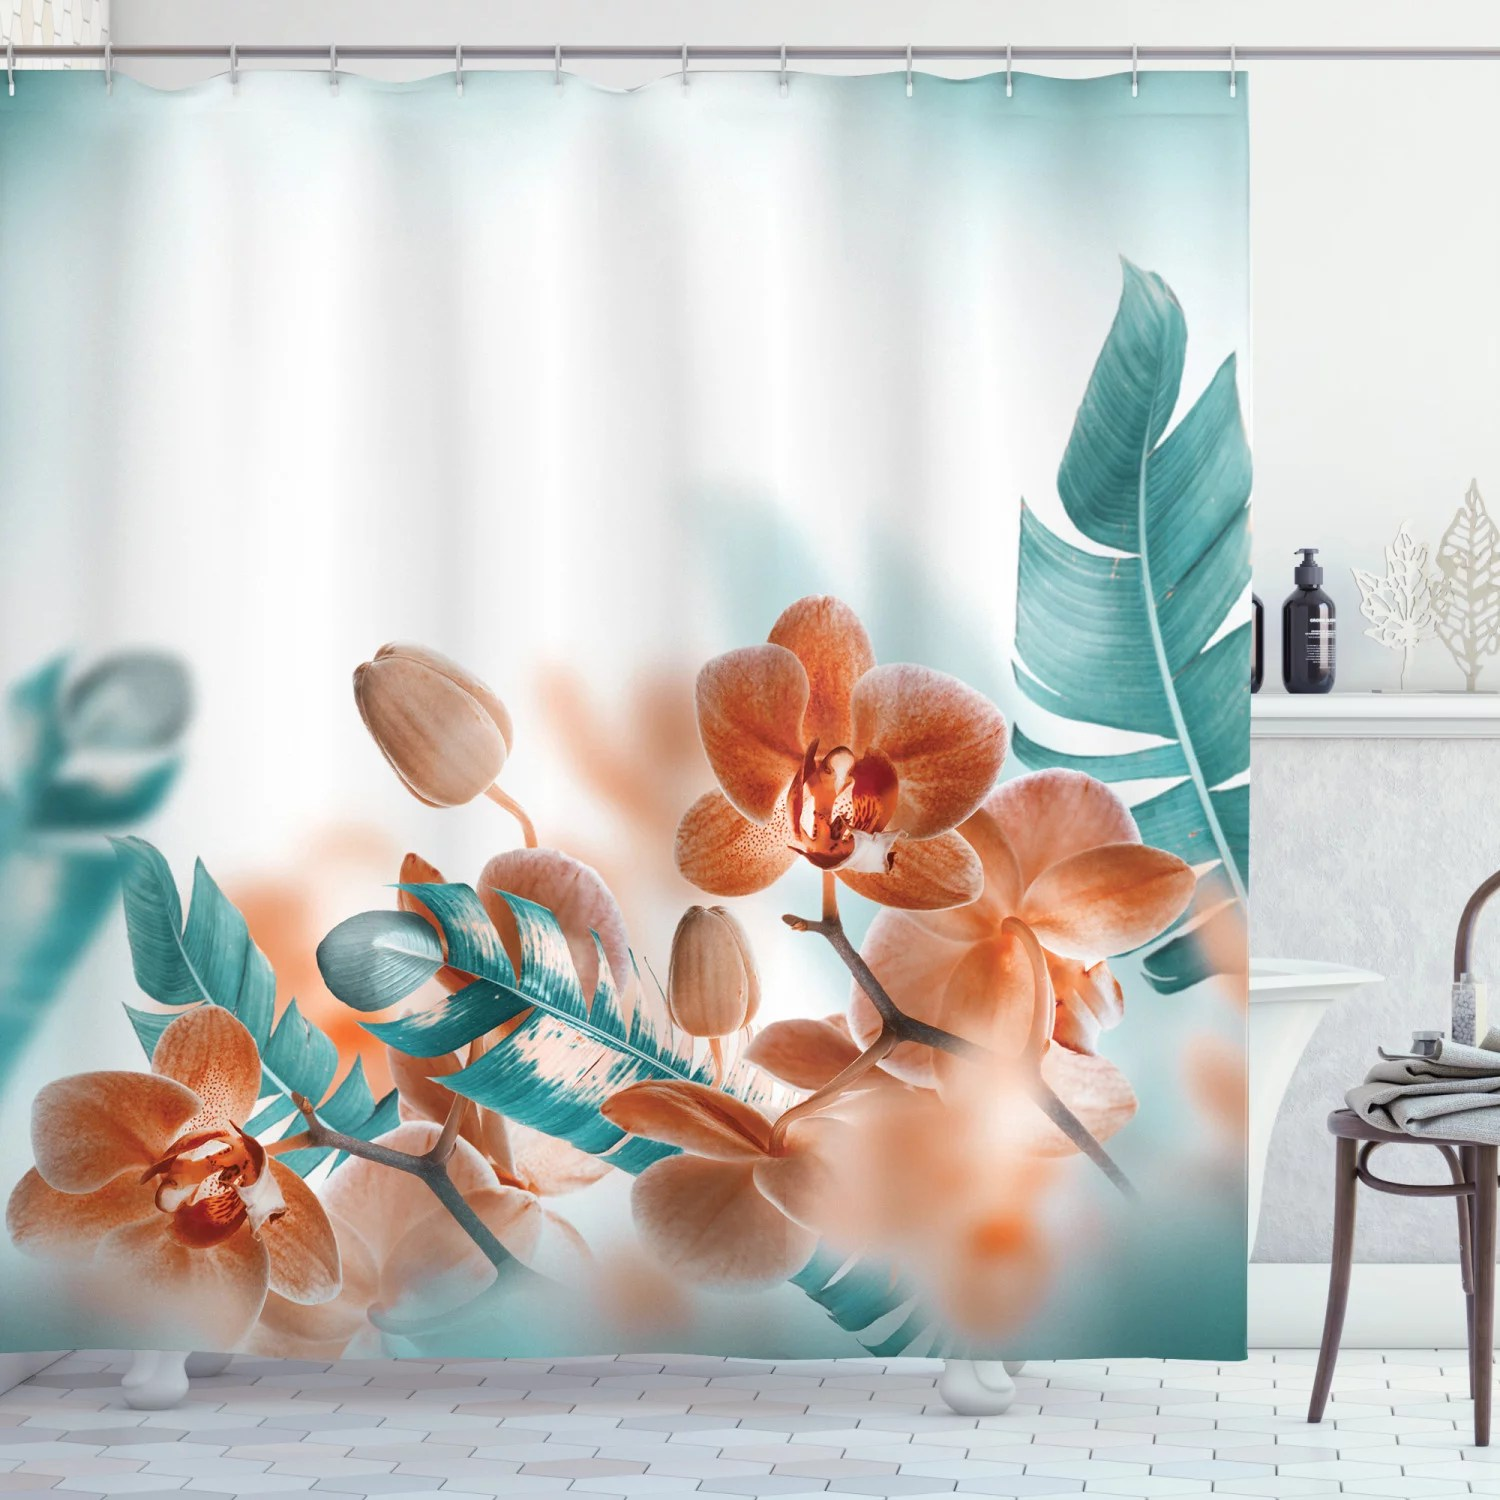 tropical decor shower curtain set tropical orchids blossom leaves on blurred background floral themed modern art bathroom accessories 69w x 70l